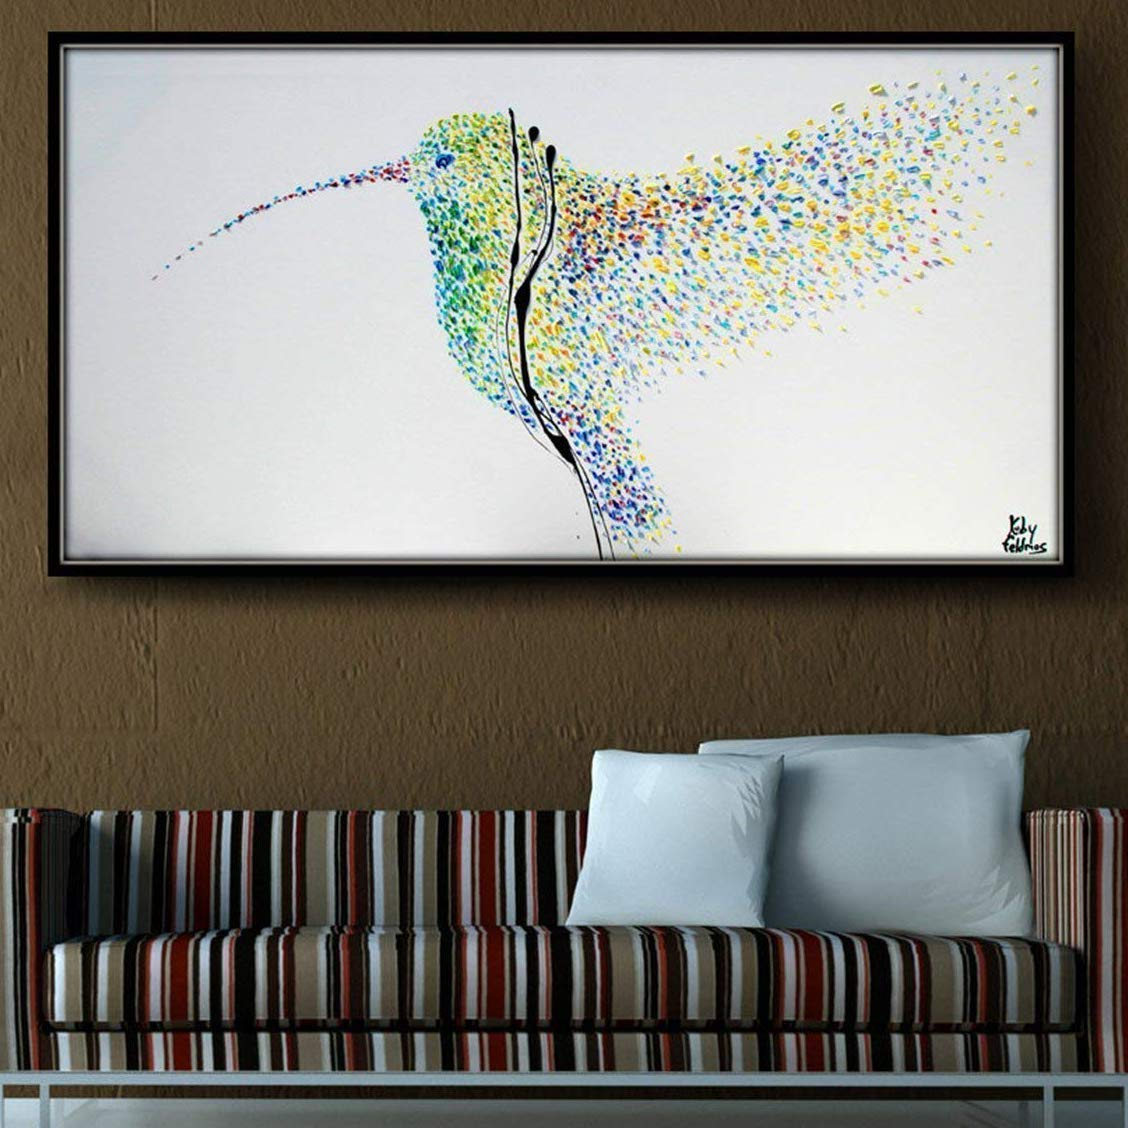 Painting Humming Bird 55 Original oil painting on canvas, Clean Modern looks, Beautiful refreshing colors, Express shipping, Koby Feldmos